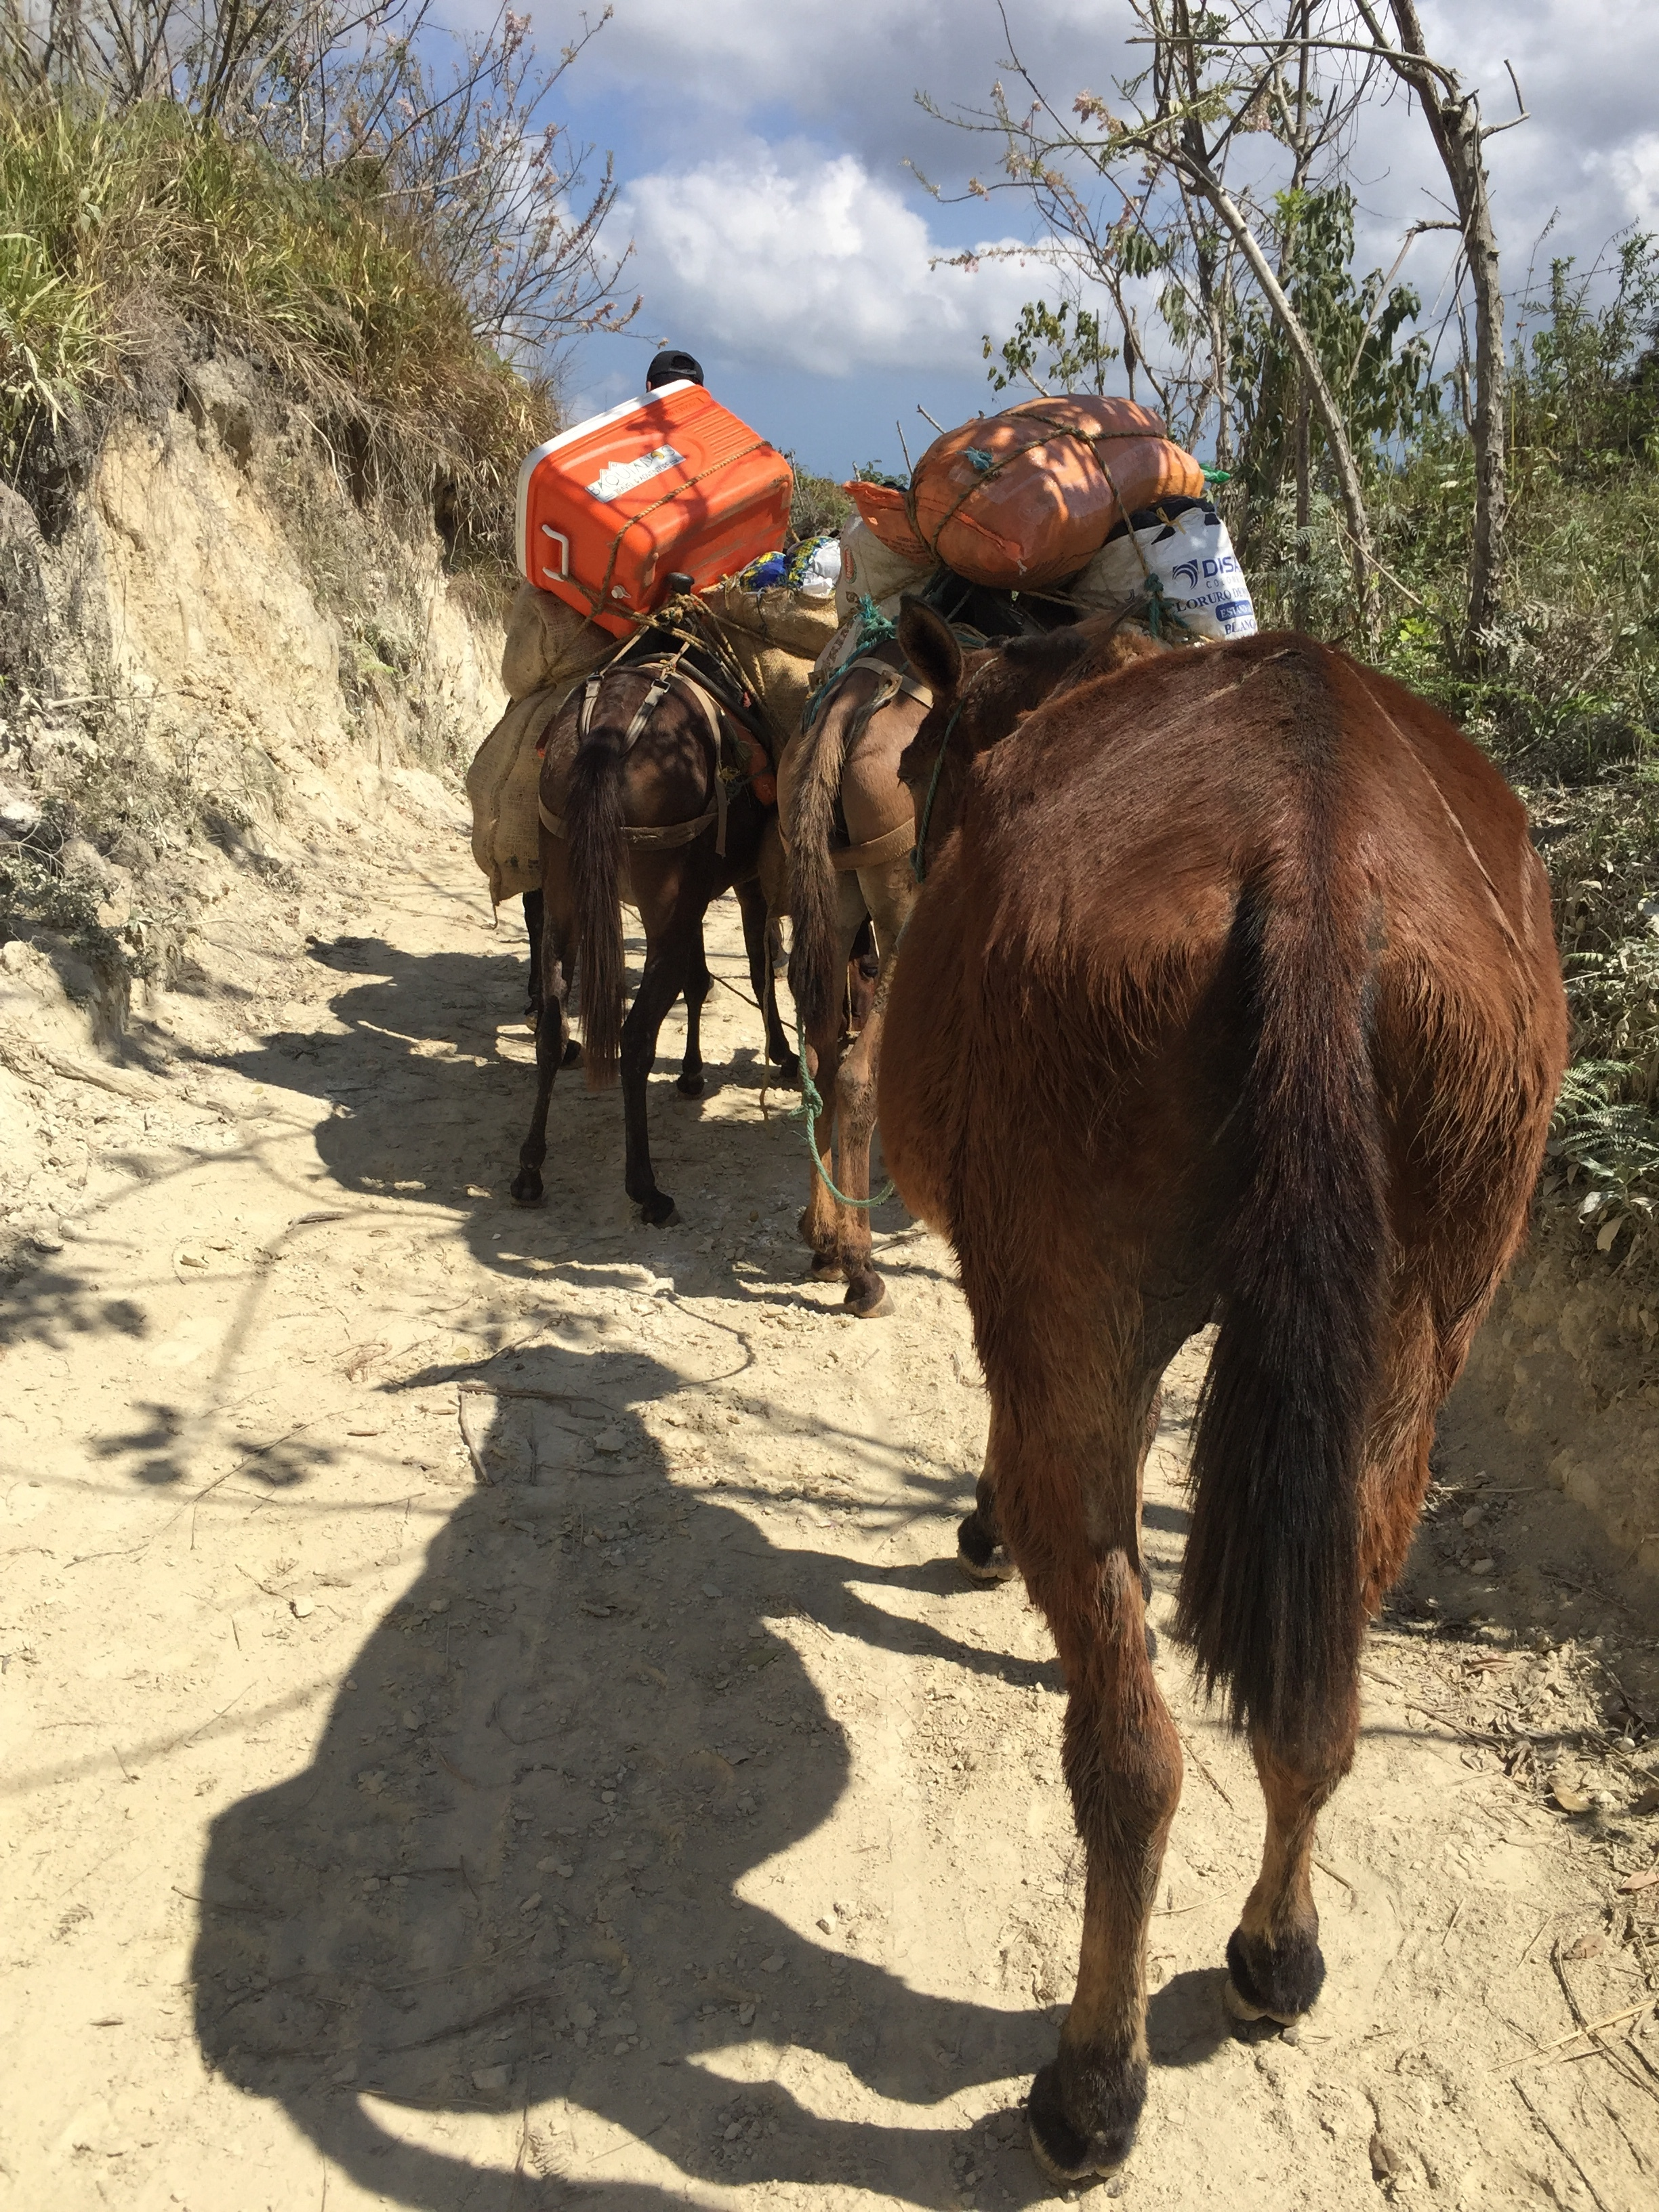 I flew off ahead, trying to capture a video of the mules.